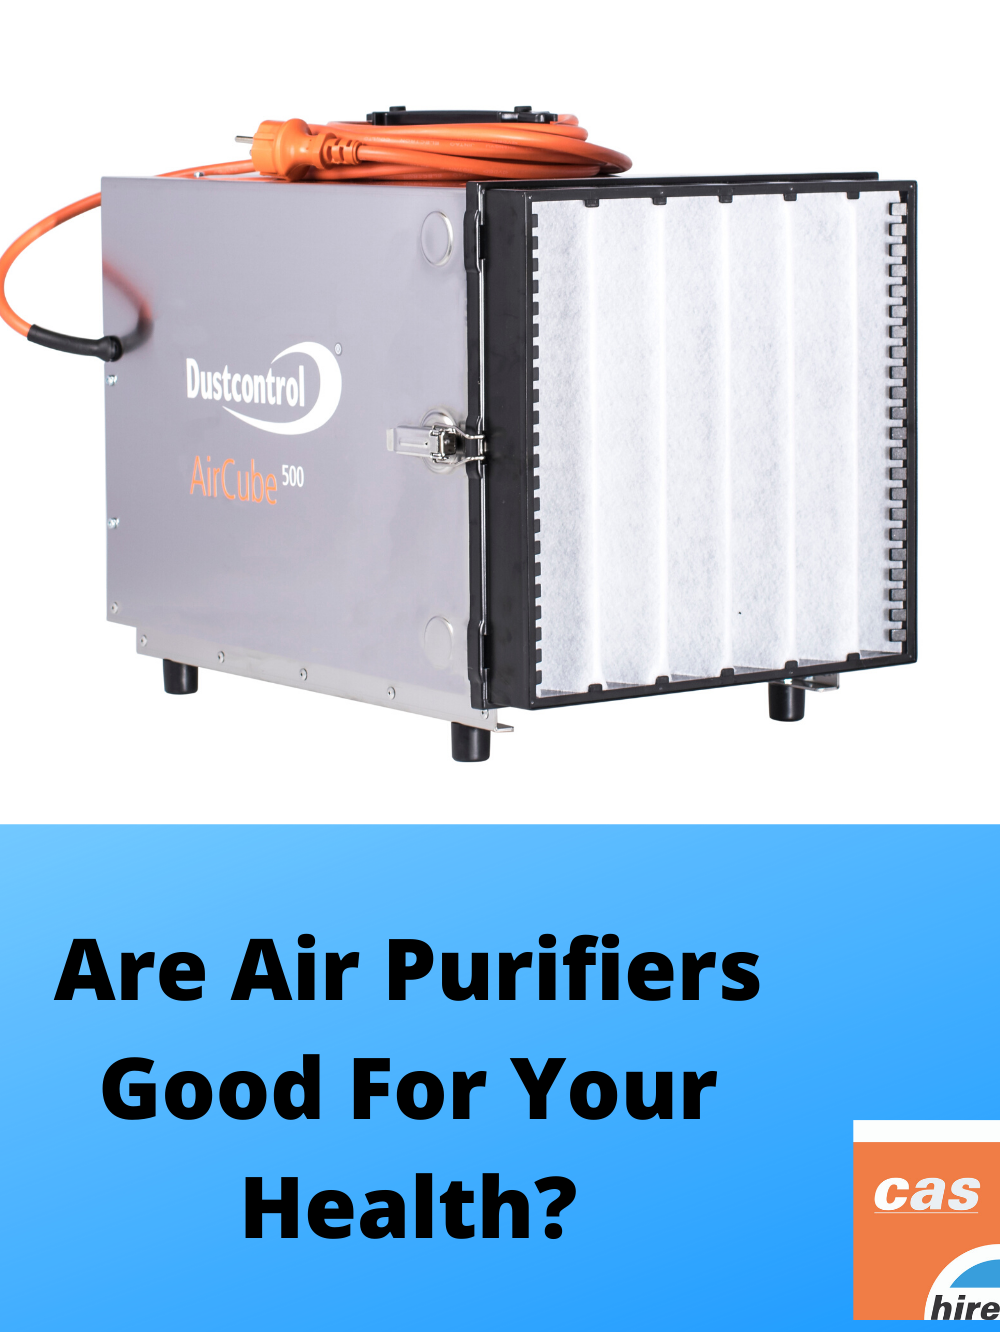 are air purifiers good for oyur health?